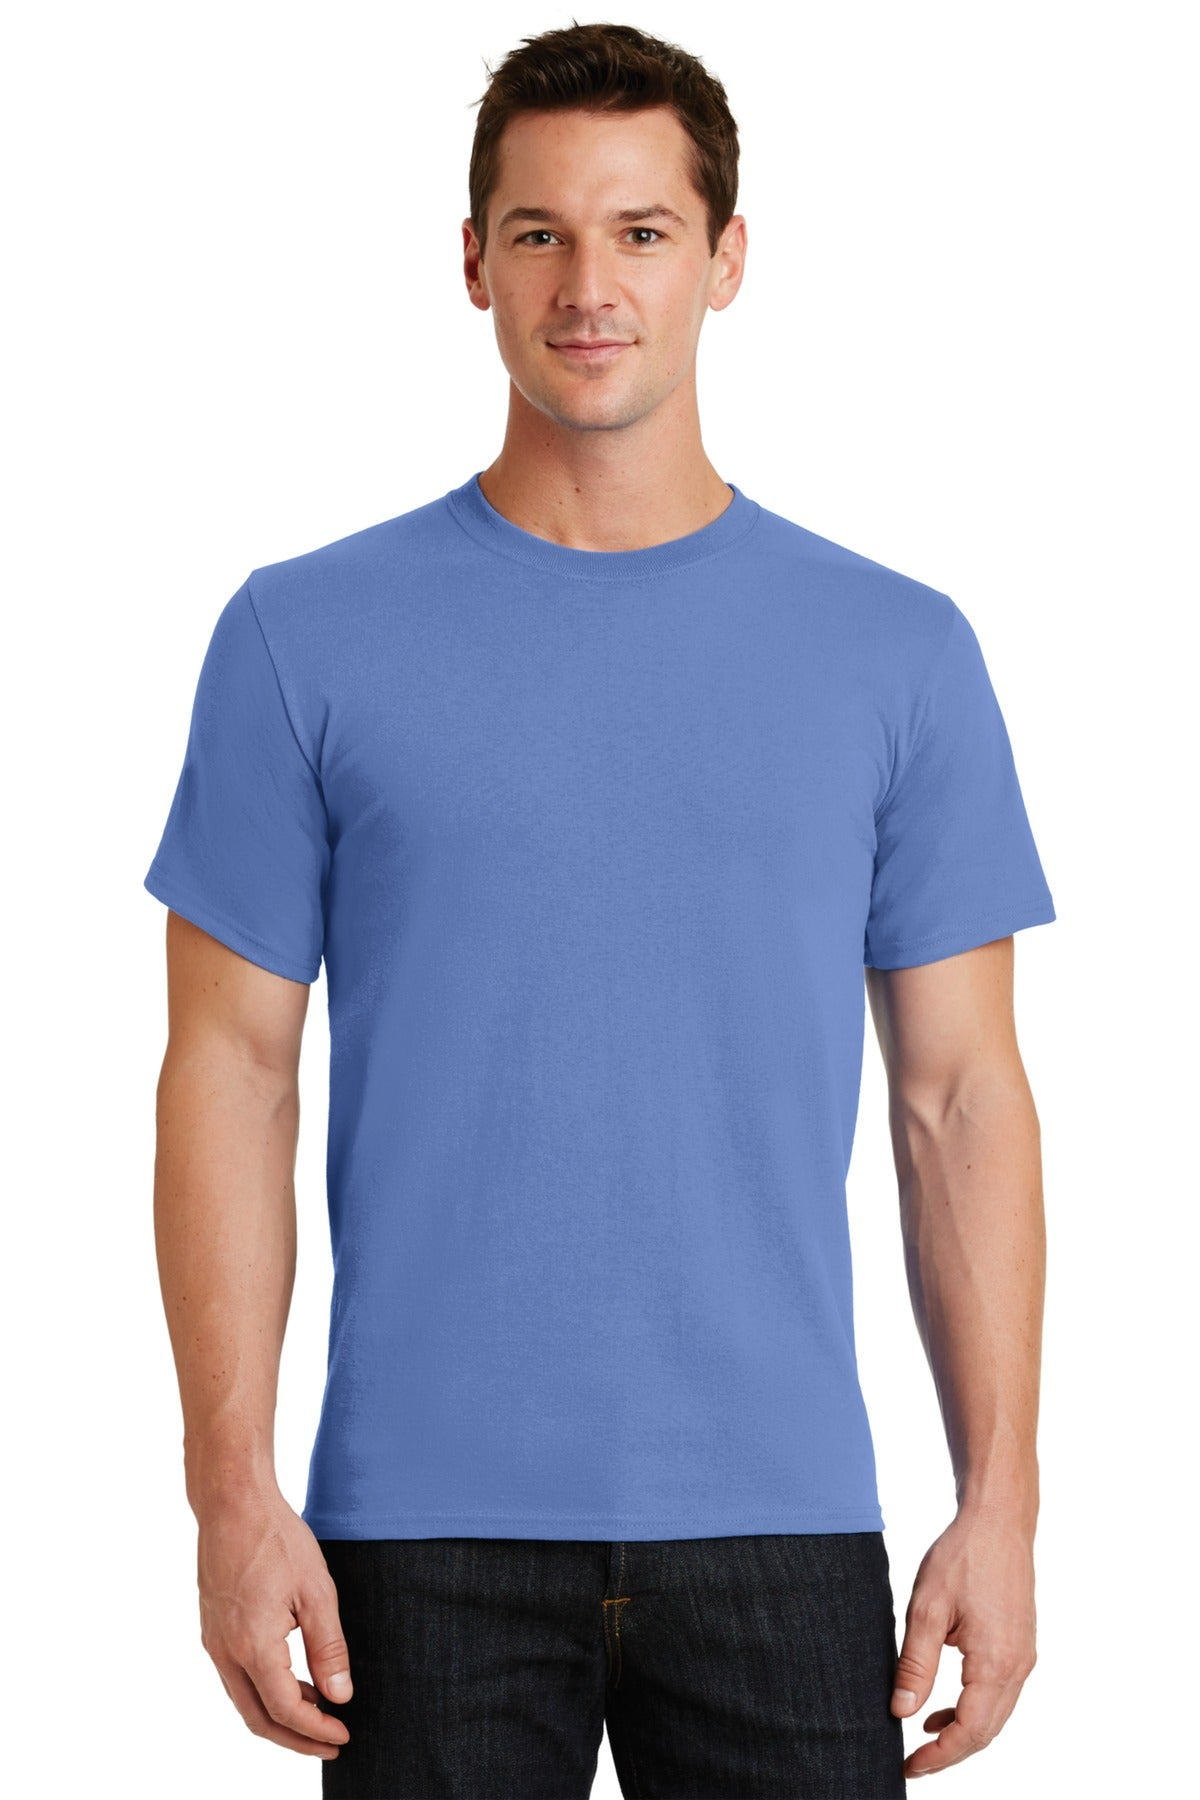 Carolina Blue Port & Company - Essential T-Shirt